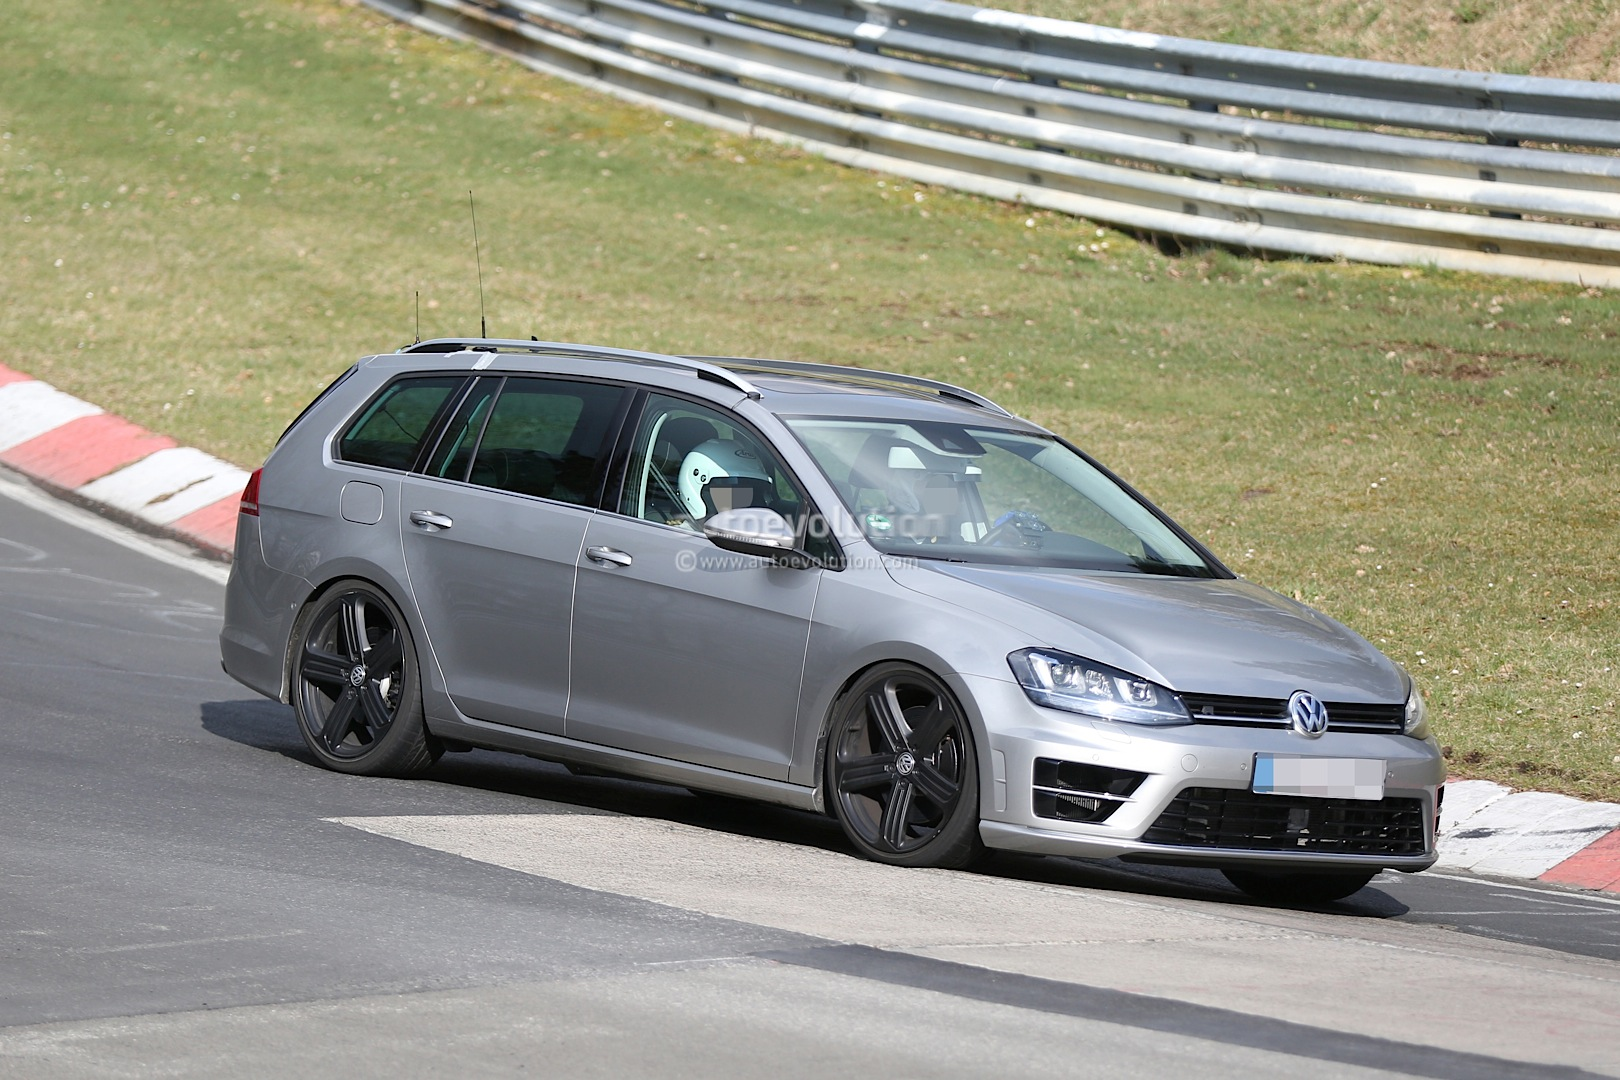 golf r estate hits the nurburgring as carmakers wage war on boring family wagons autoevolution. Black Bedroom Furniture Sets. Home Design Ideas